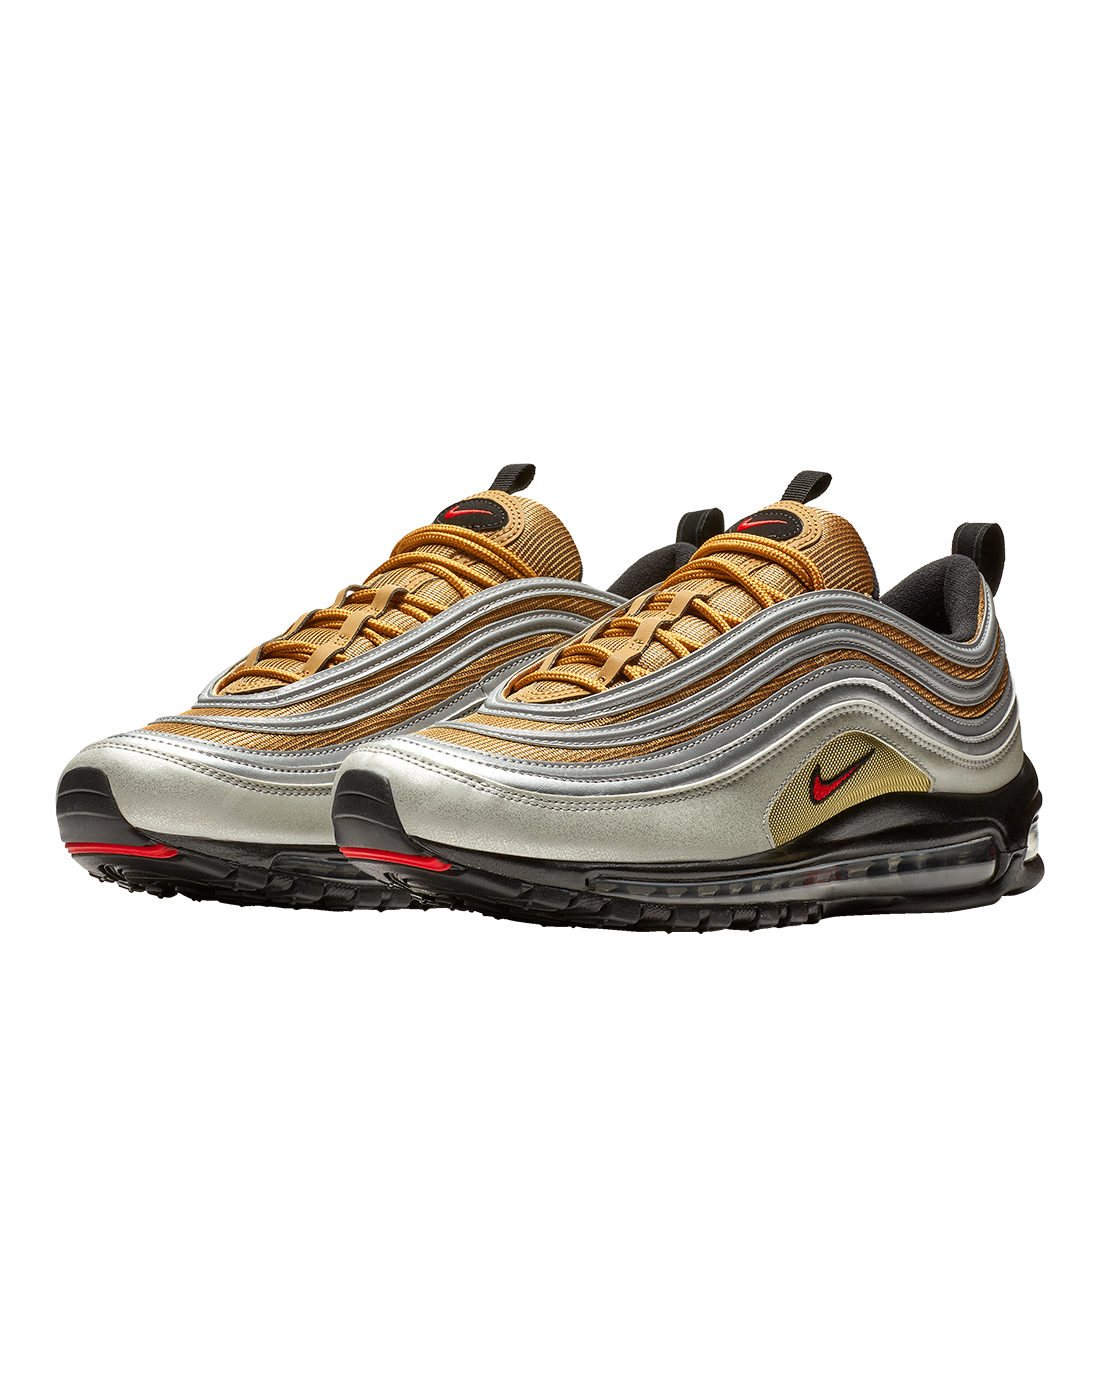 3ebbdb3397 Men's Gold & Silver Nike Air Max 97 | Life Style Sports